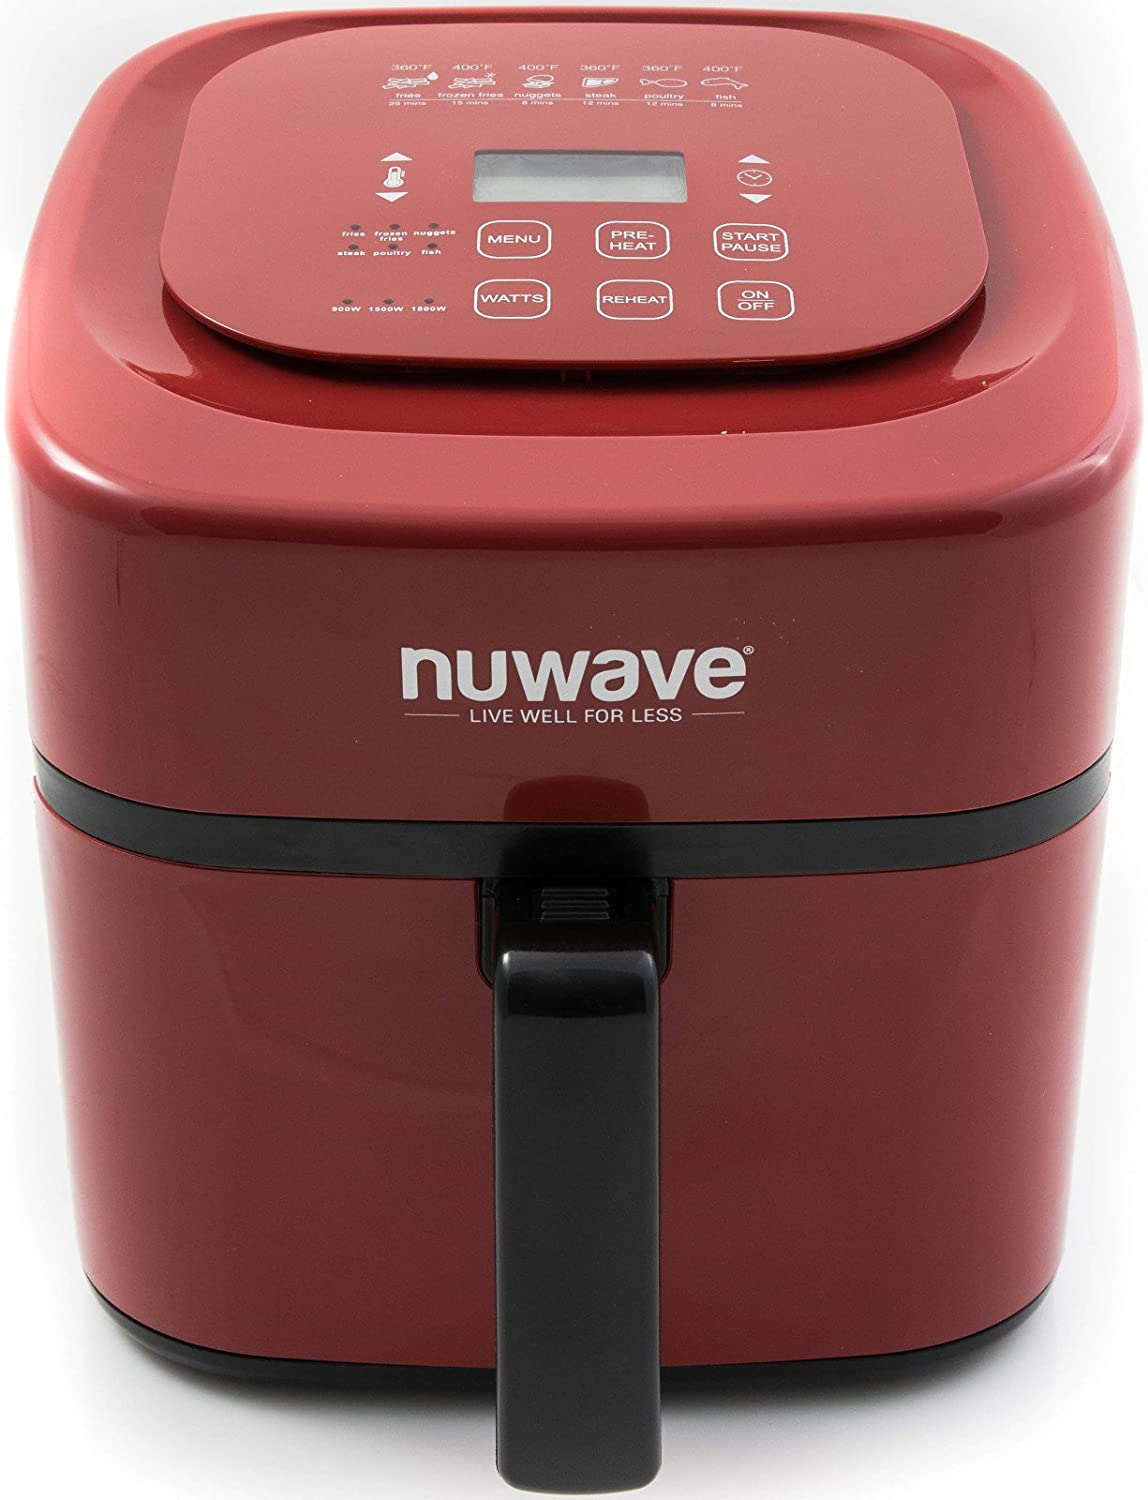 Nuwave 6 qt. Brio Air Fryer -Red